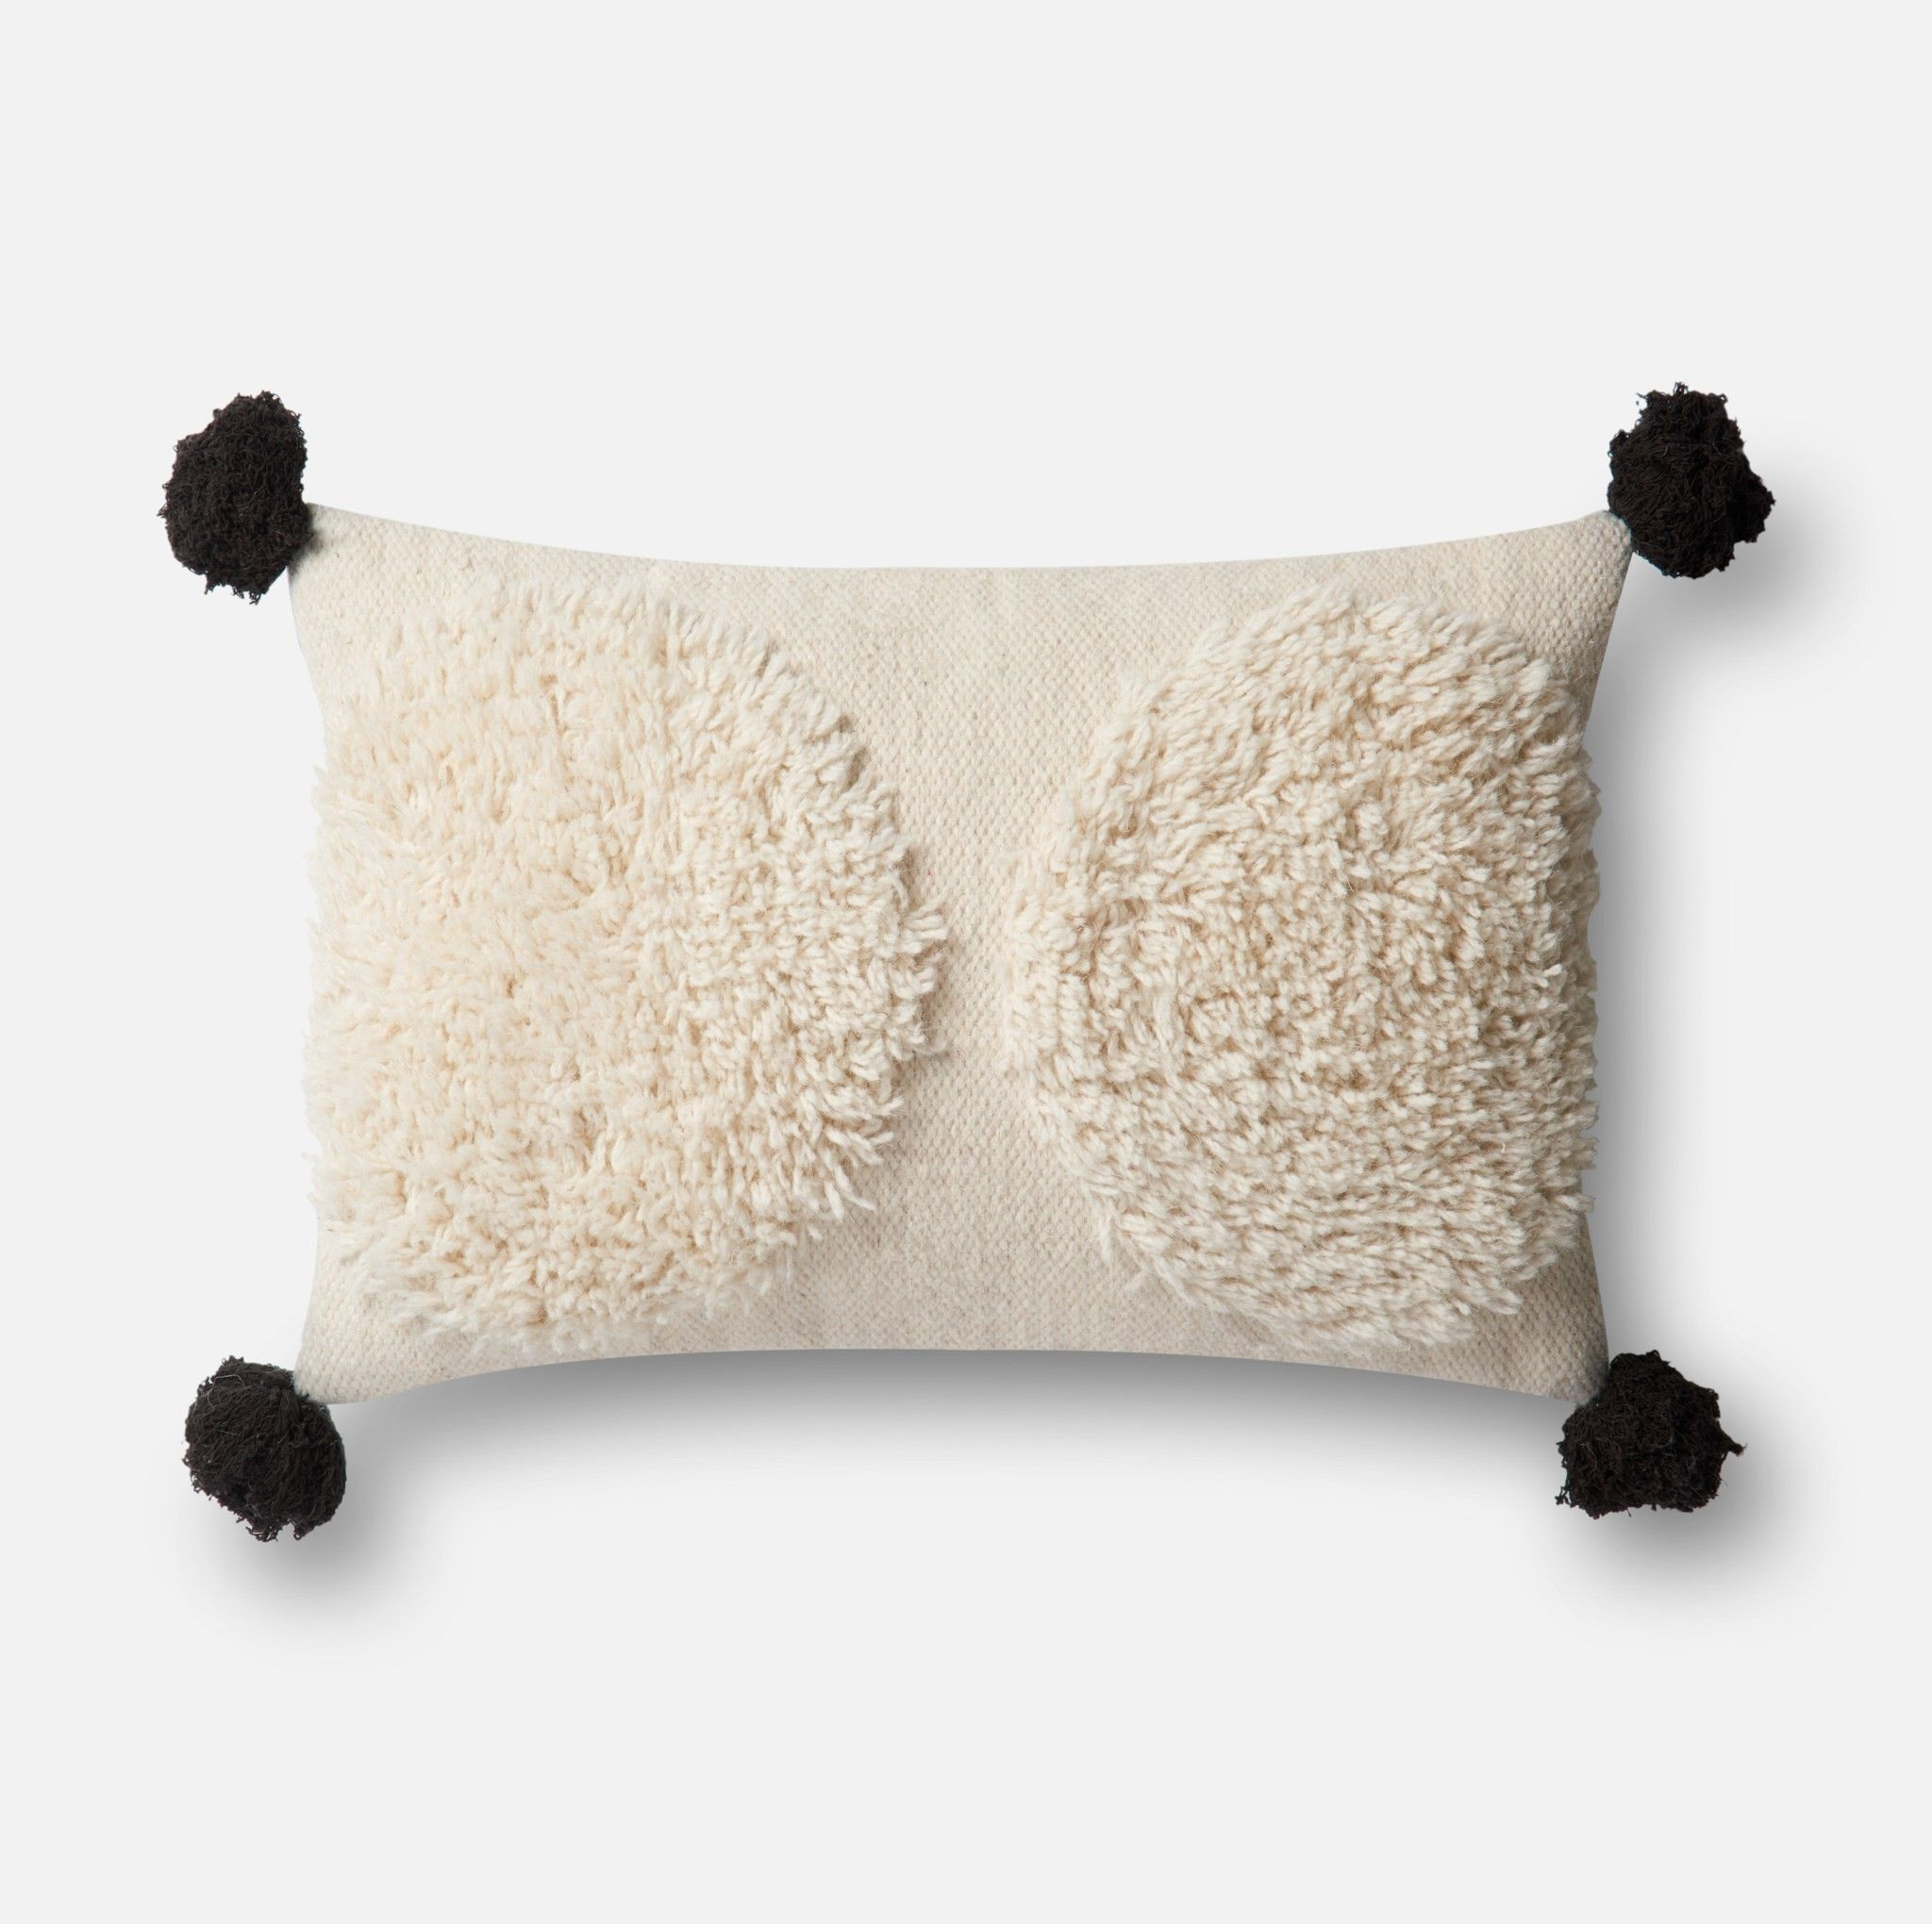 il zoom best en selling future pillow for gift bestselling editor fullxfull sg listing author